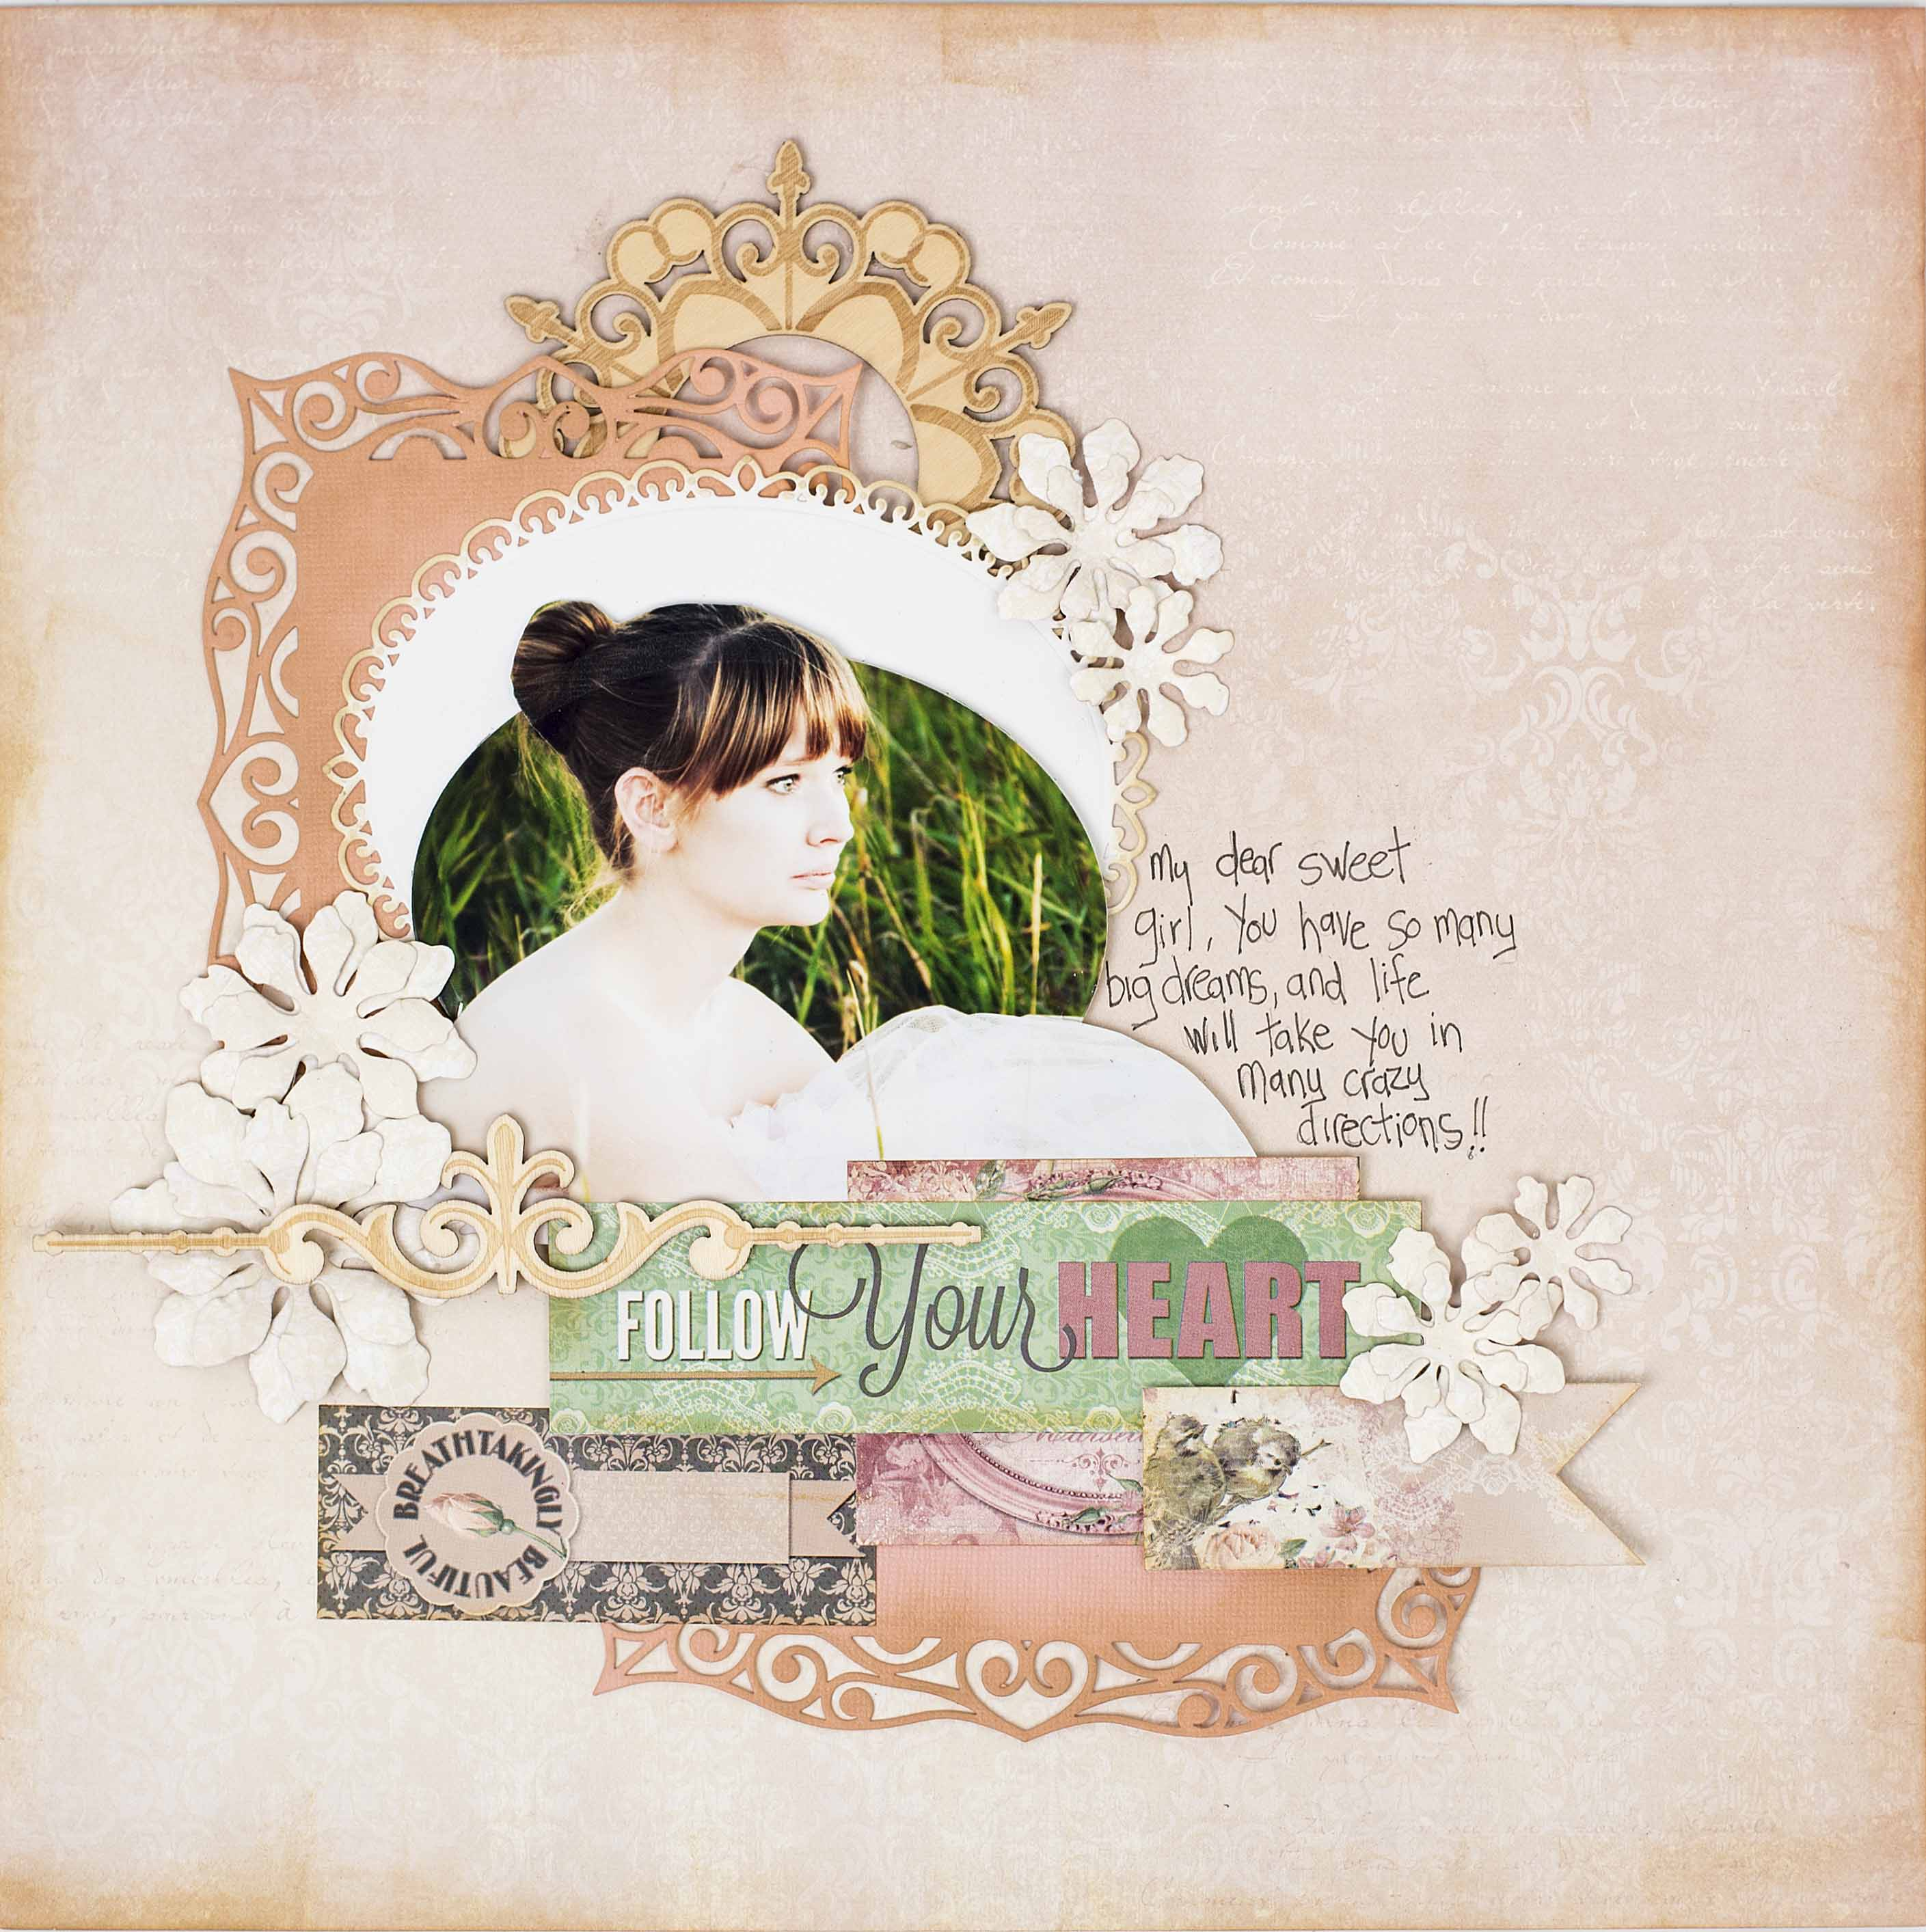 Scrapbook layout featuring a cameo cutting technique   Designed by Christy Riopel   Creative Scrapbooker Magazine